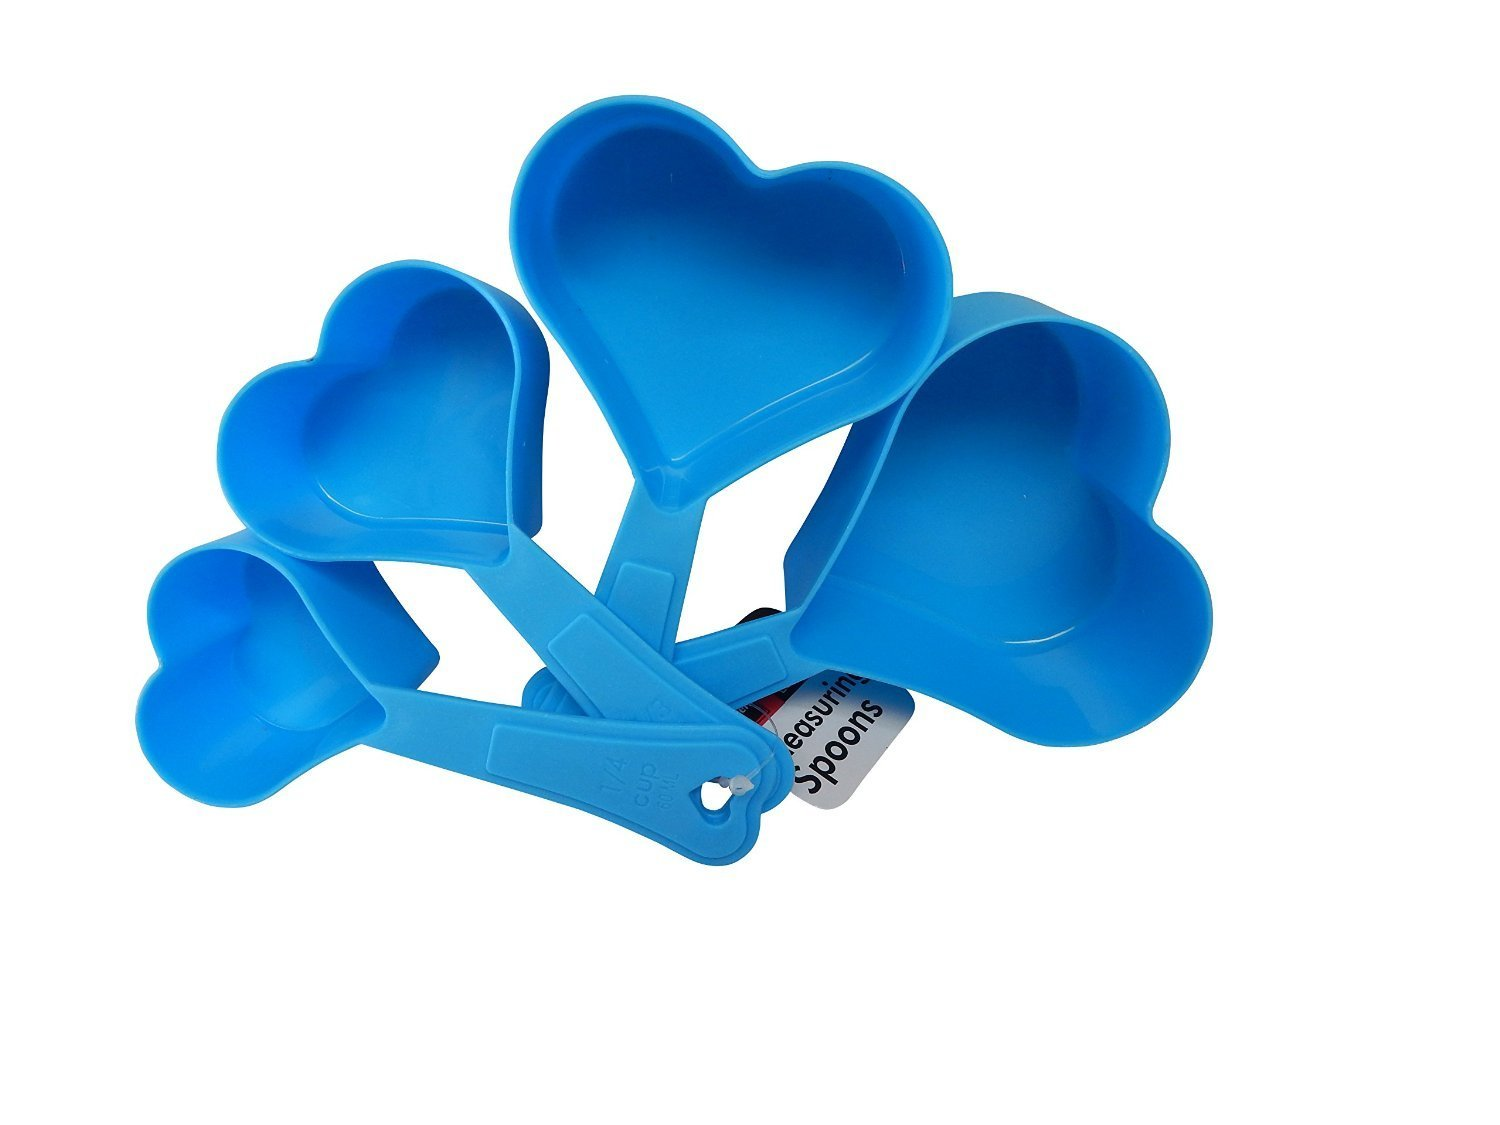 Heartshaped Measuring cups